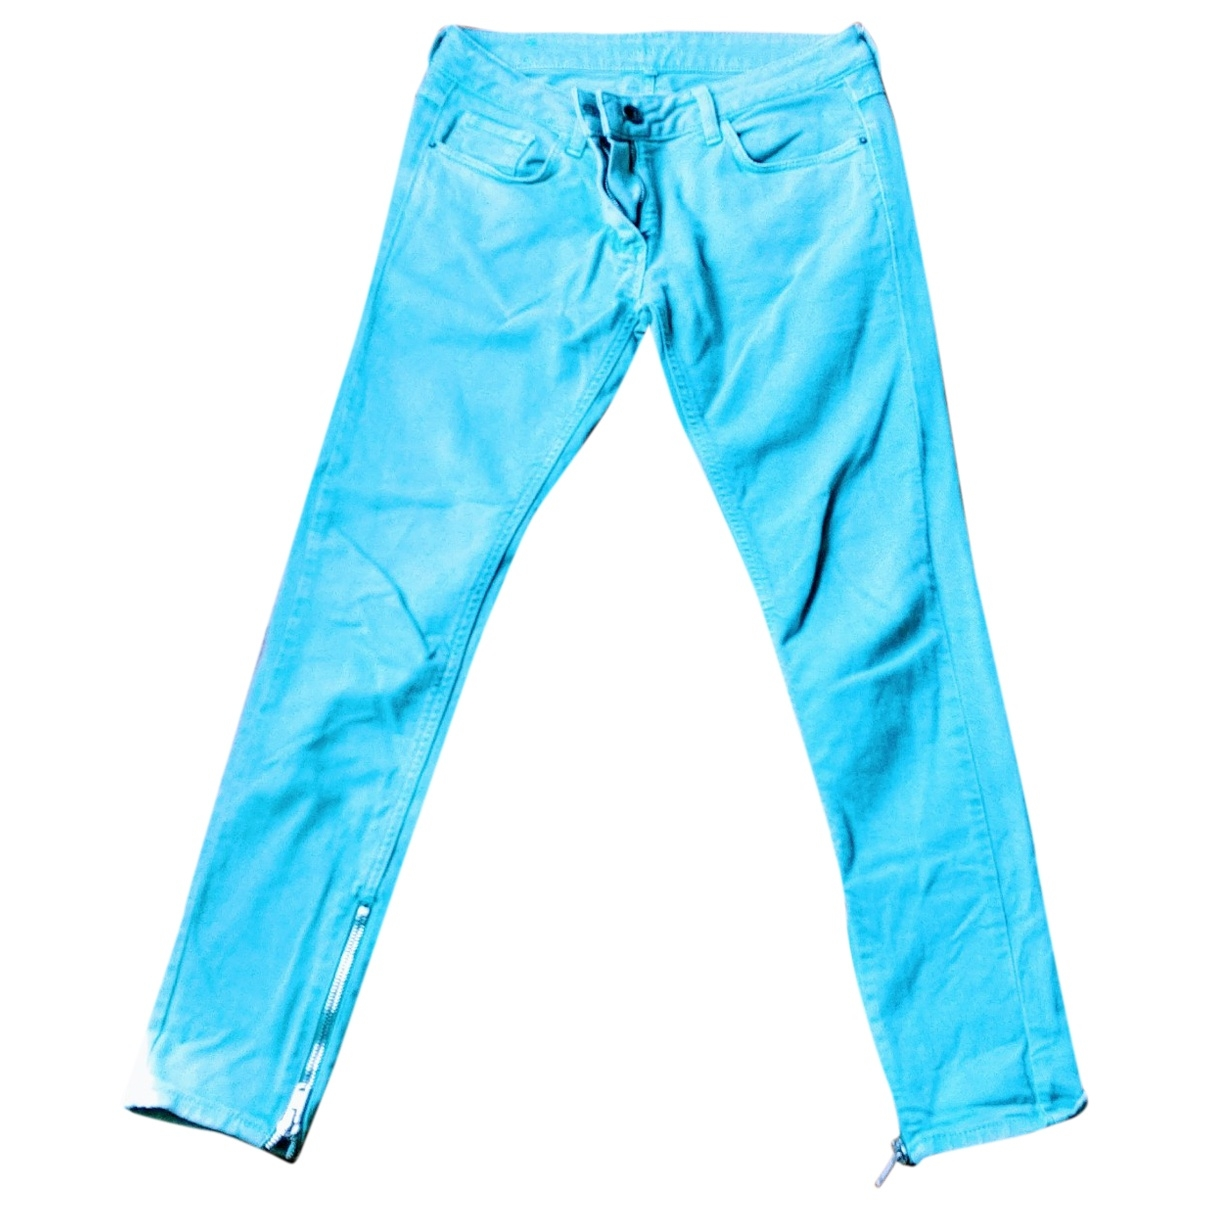 Sandro \N Turquoise Cotton Jeans for Women 38 FR